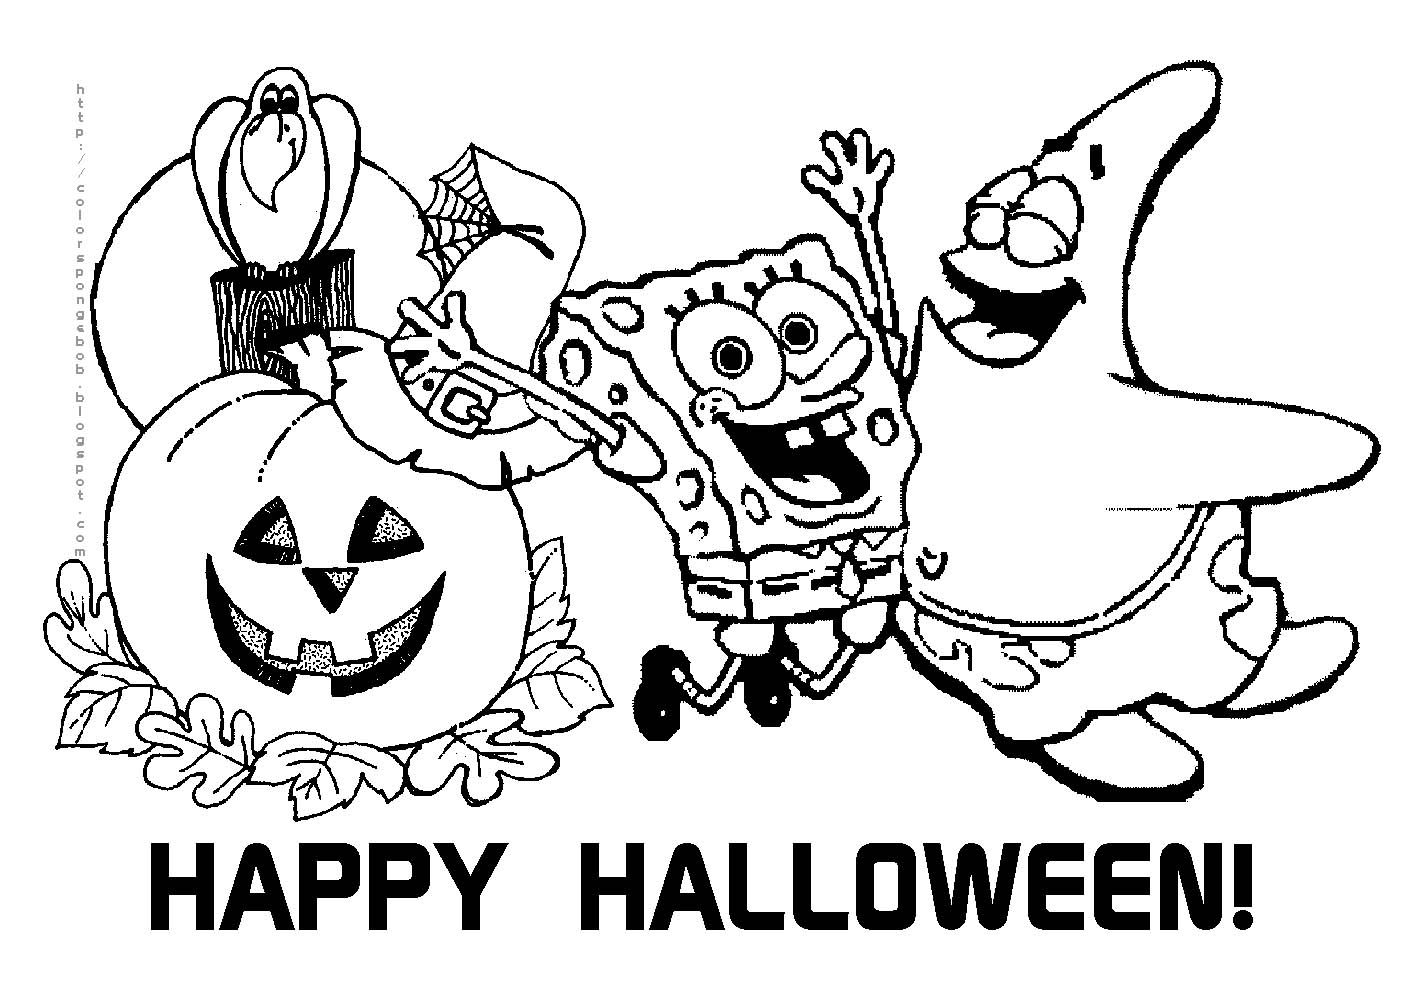 HALLOWEEN SPONGEBOB SQUAREPANTS COLORING SHEET FREE